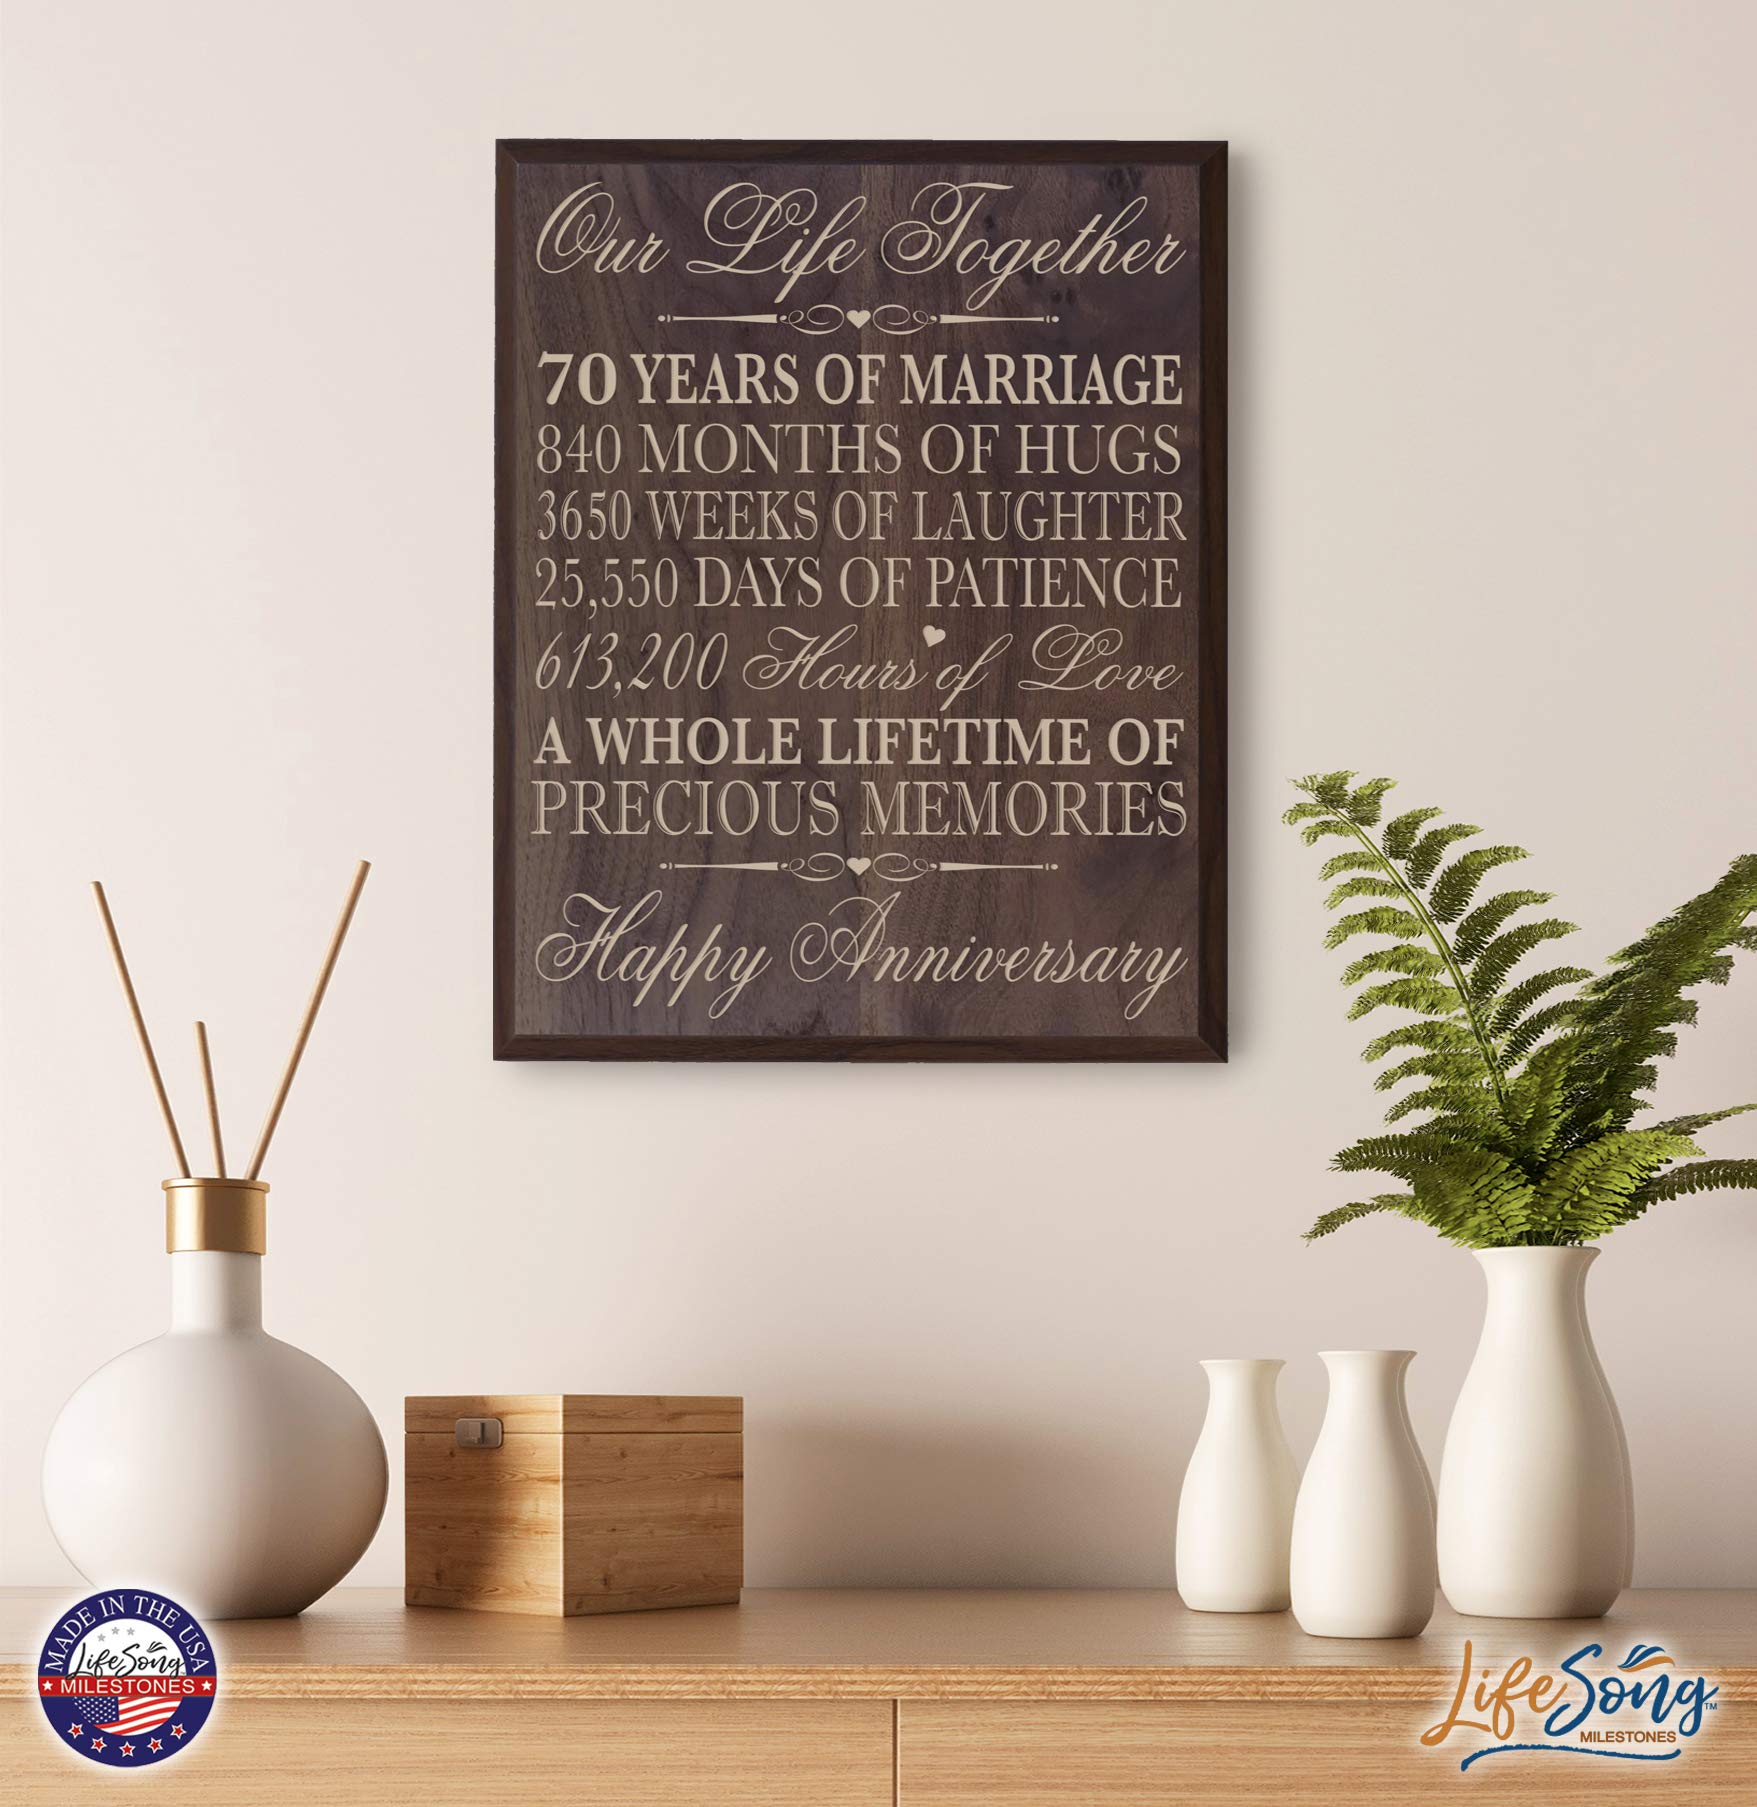 70th Wedding Anniversary Wall Plaque Gifts for Couple Parents, 70th for Her,him 70th Wedding for Him 12'' W X 15'' H Wall Plaque (Grand Walnut) by LifeSong Milestones (Image #4)